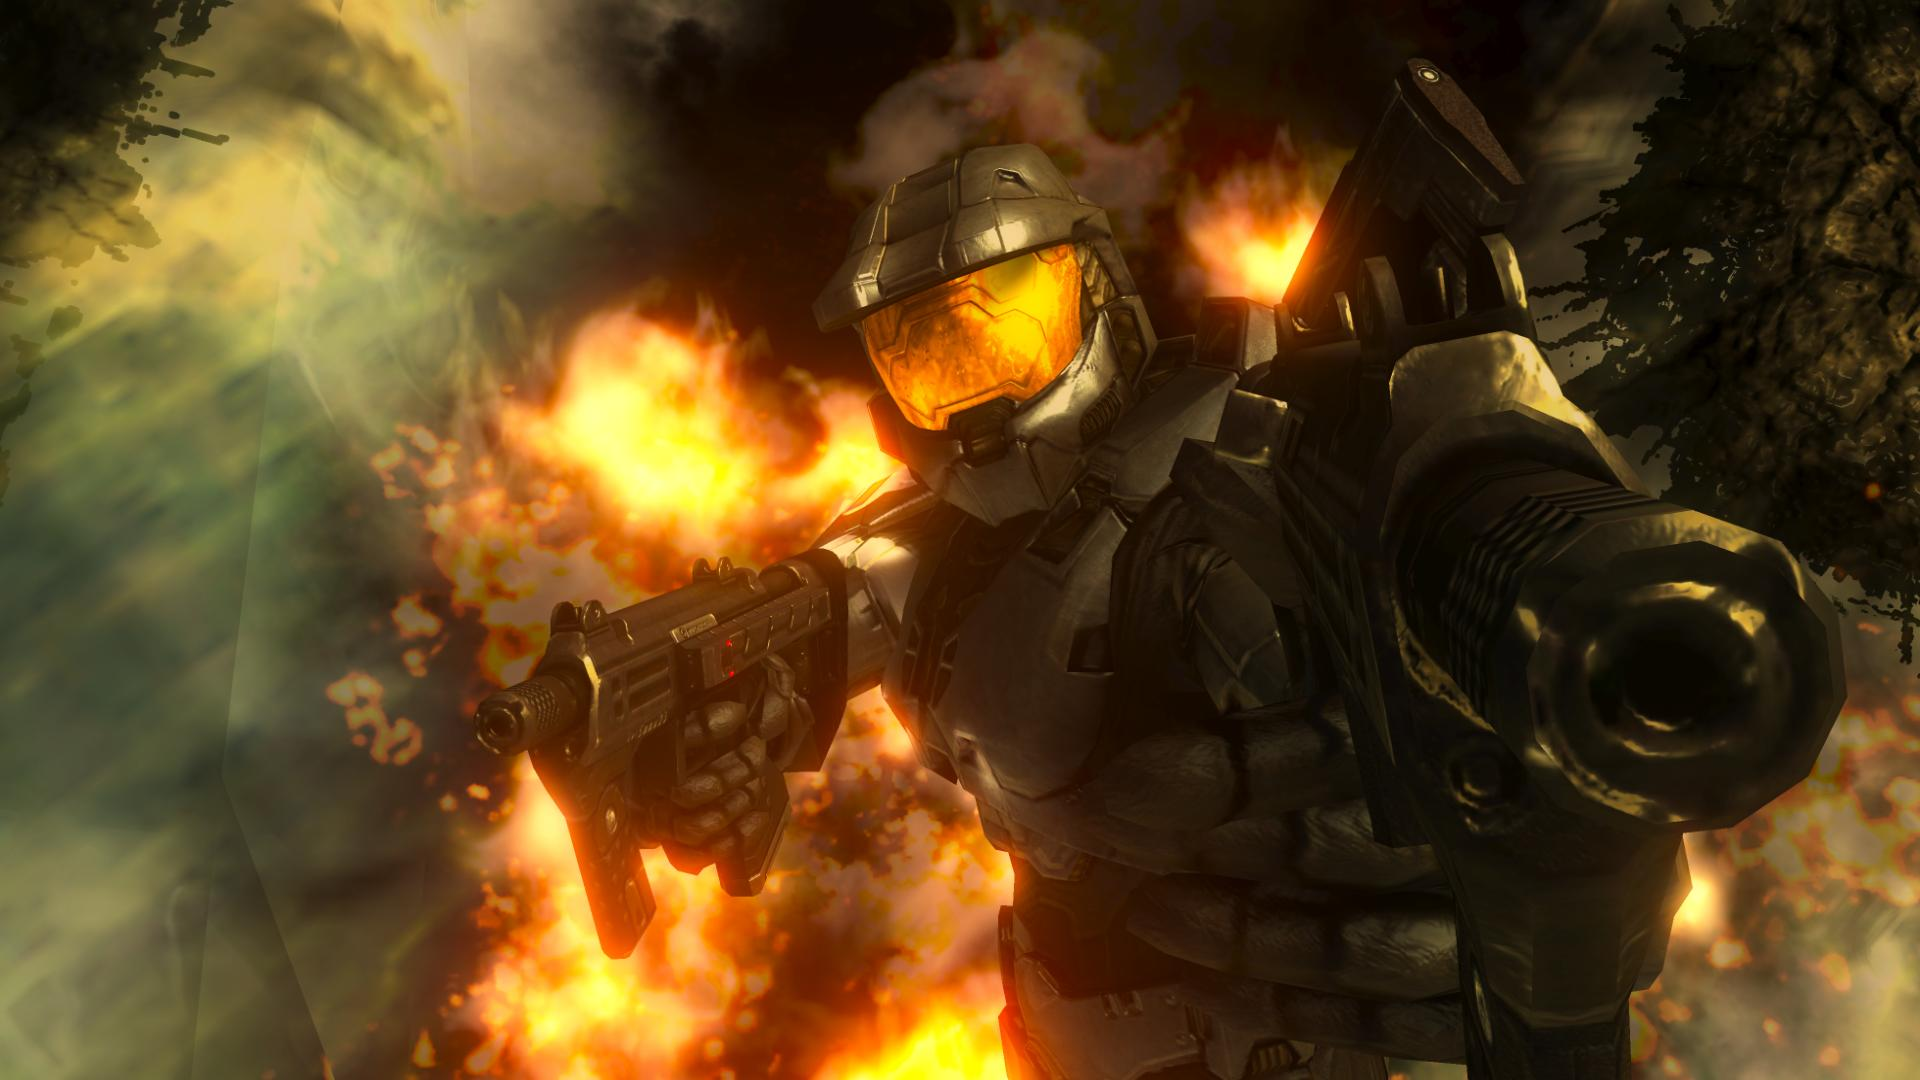 Halo Master Chief Wallpaper Wallpaper